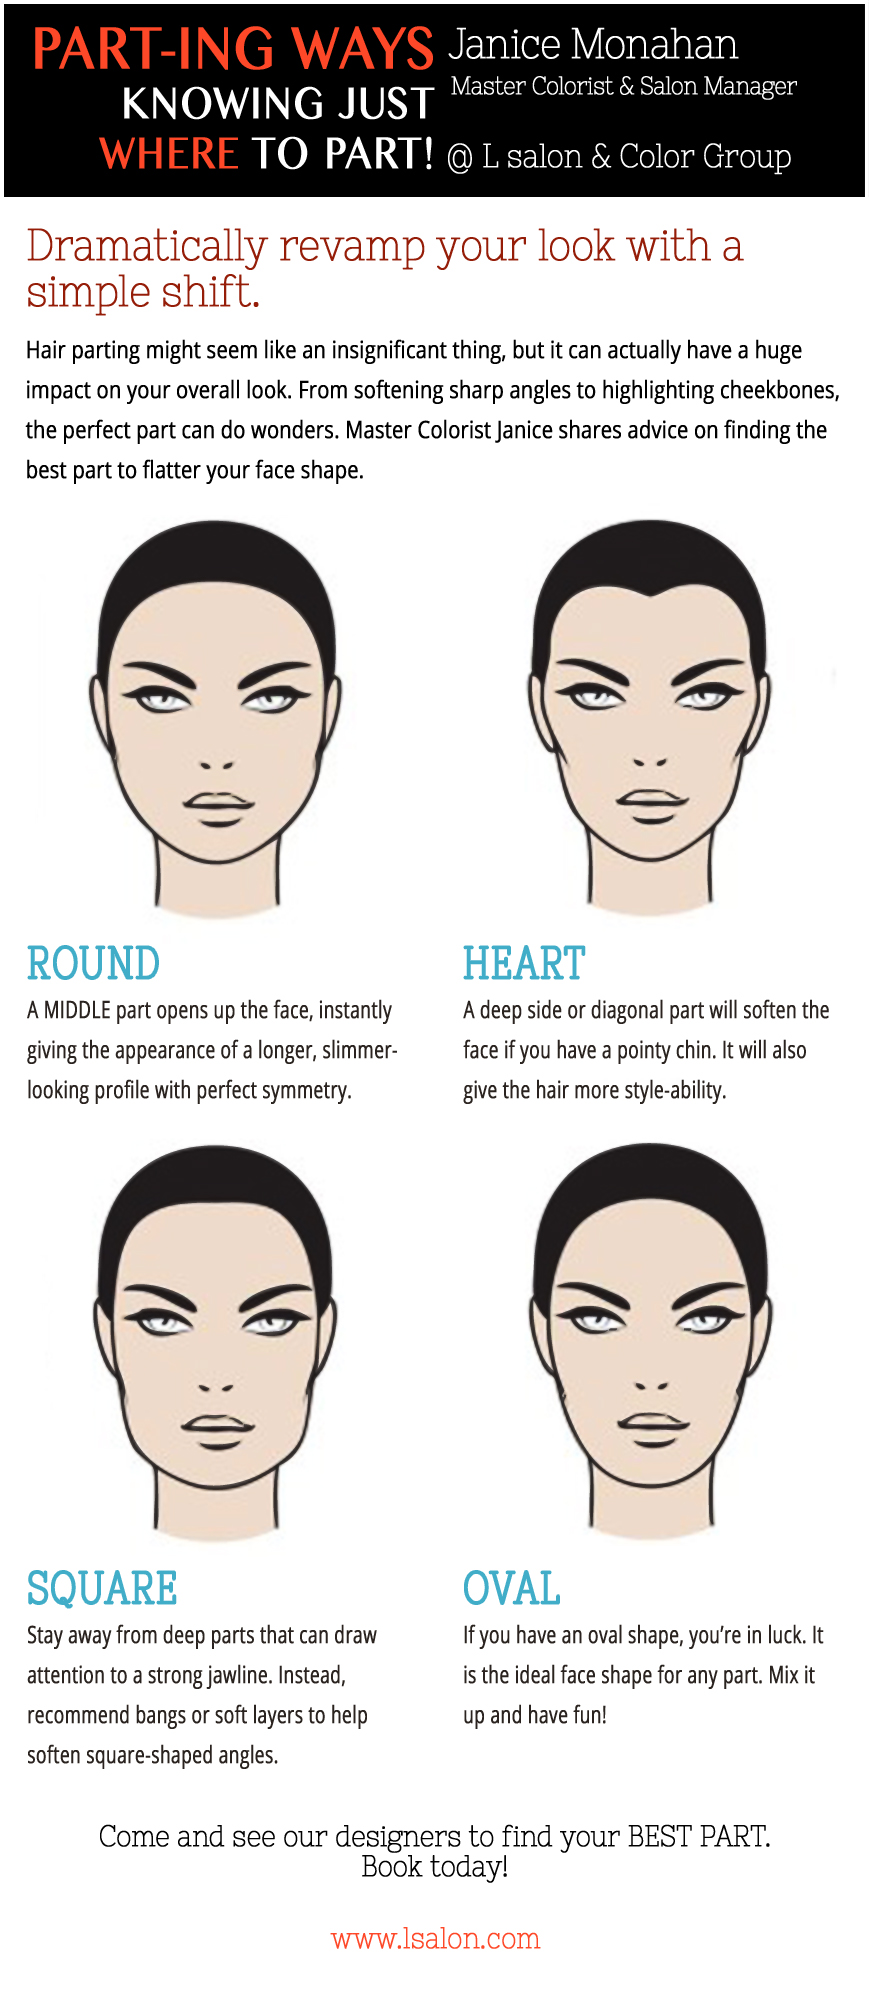 Drawn profile pointy chin Part  your flatter to